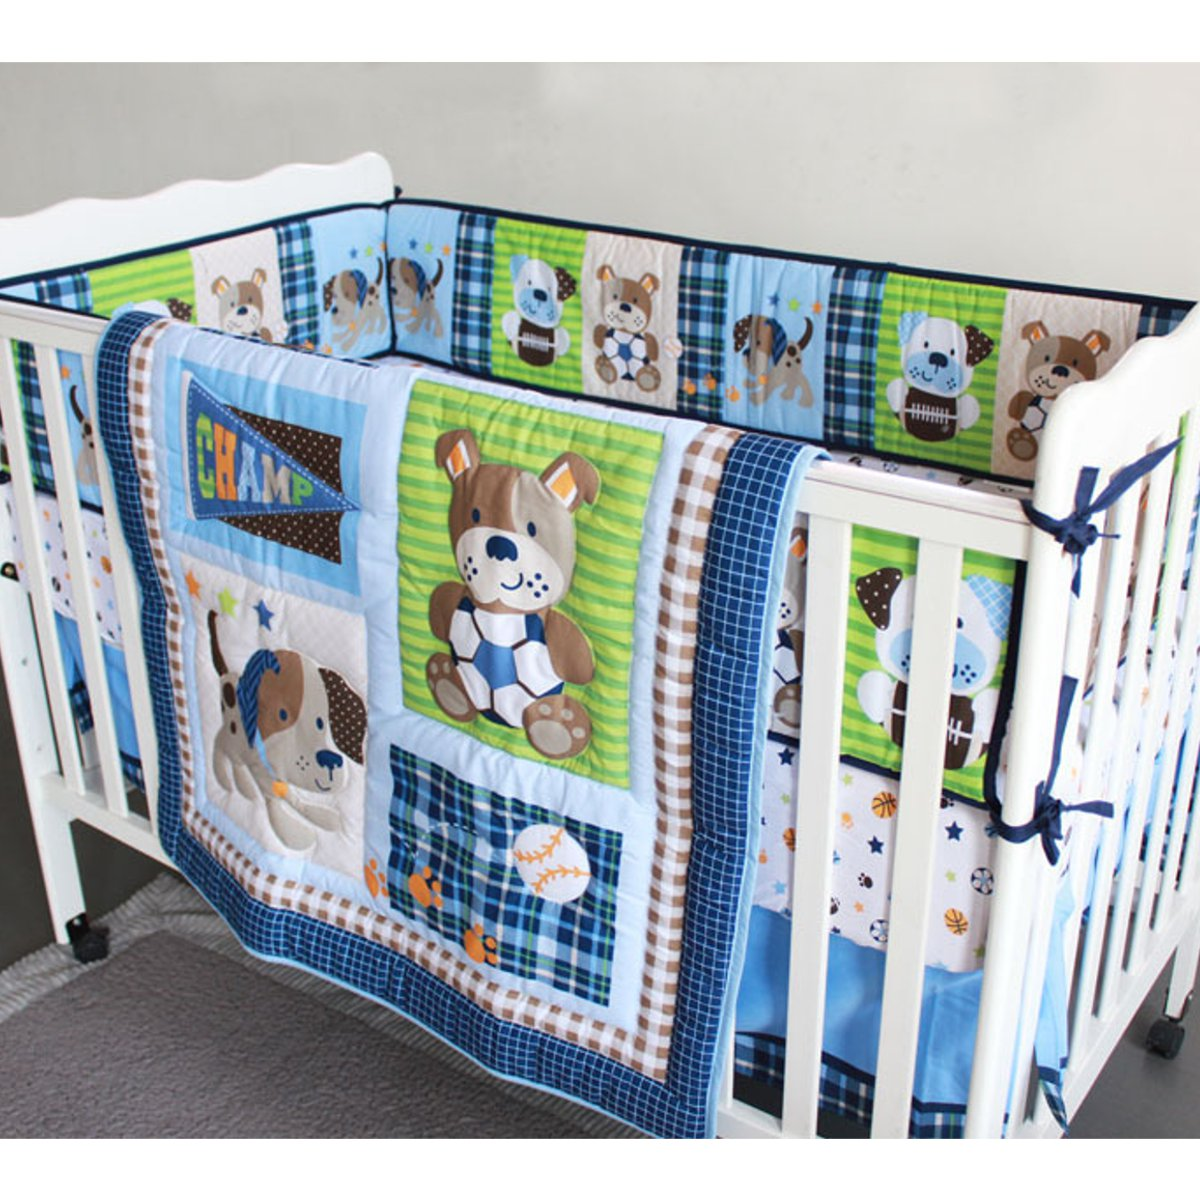 Ups Free New 3 Pcs Beatles Baby Cot Set Bedding Crib For Baby Sheets Comforter Quilt Sheet Bumper The Latest Fashion Baby Bedding